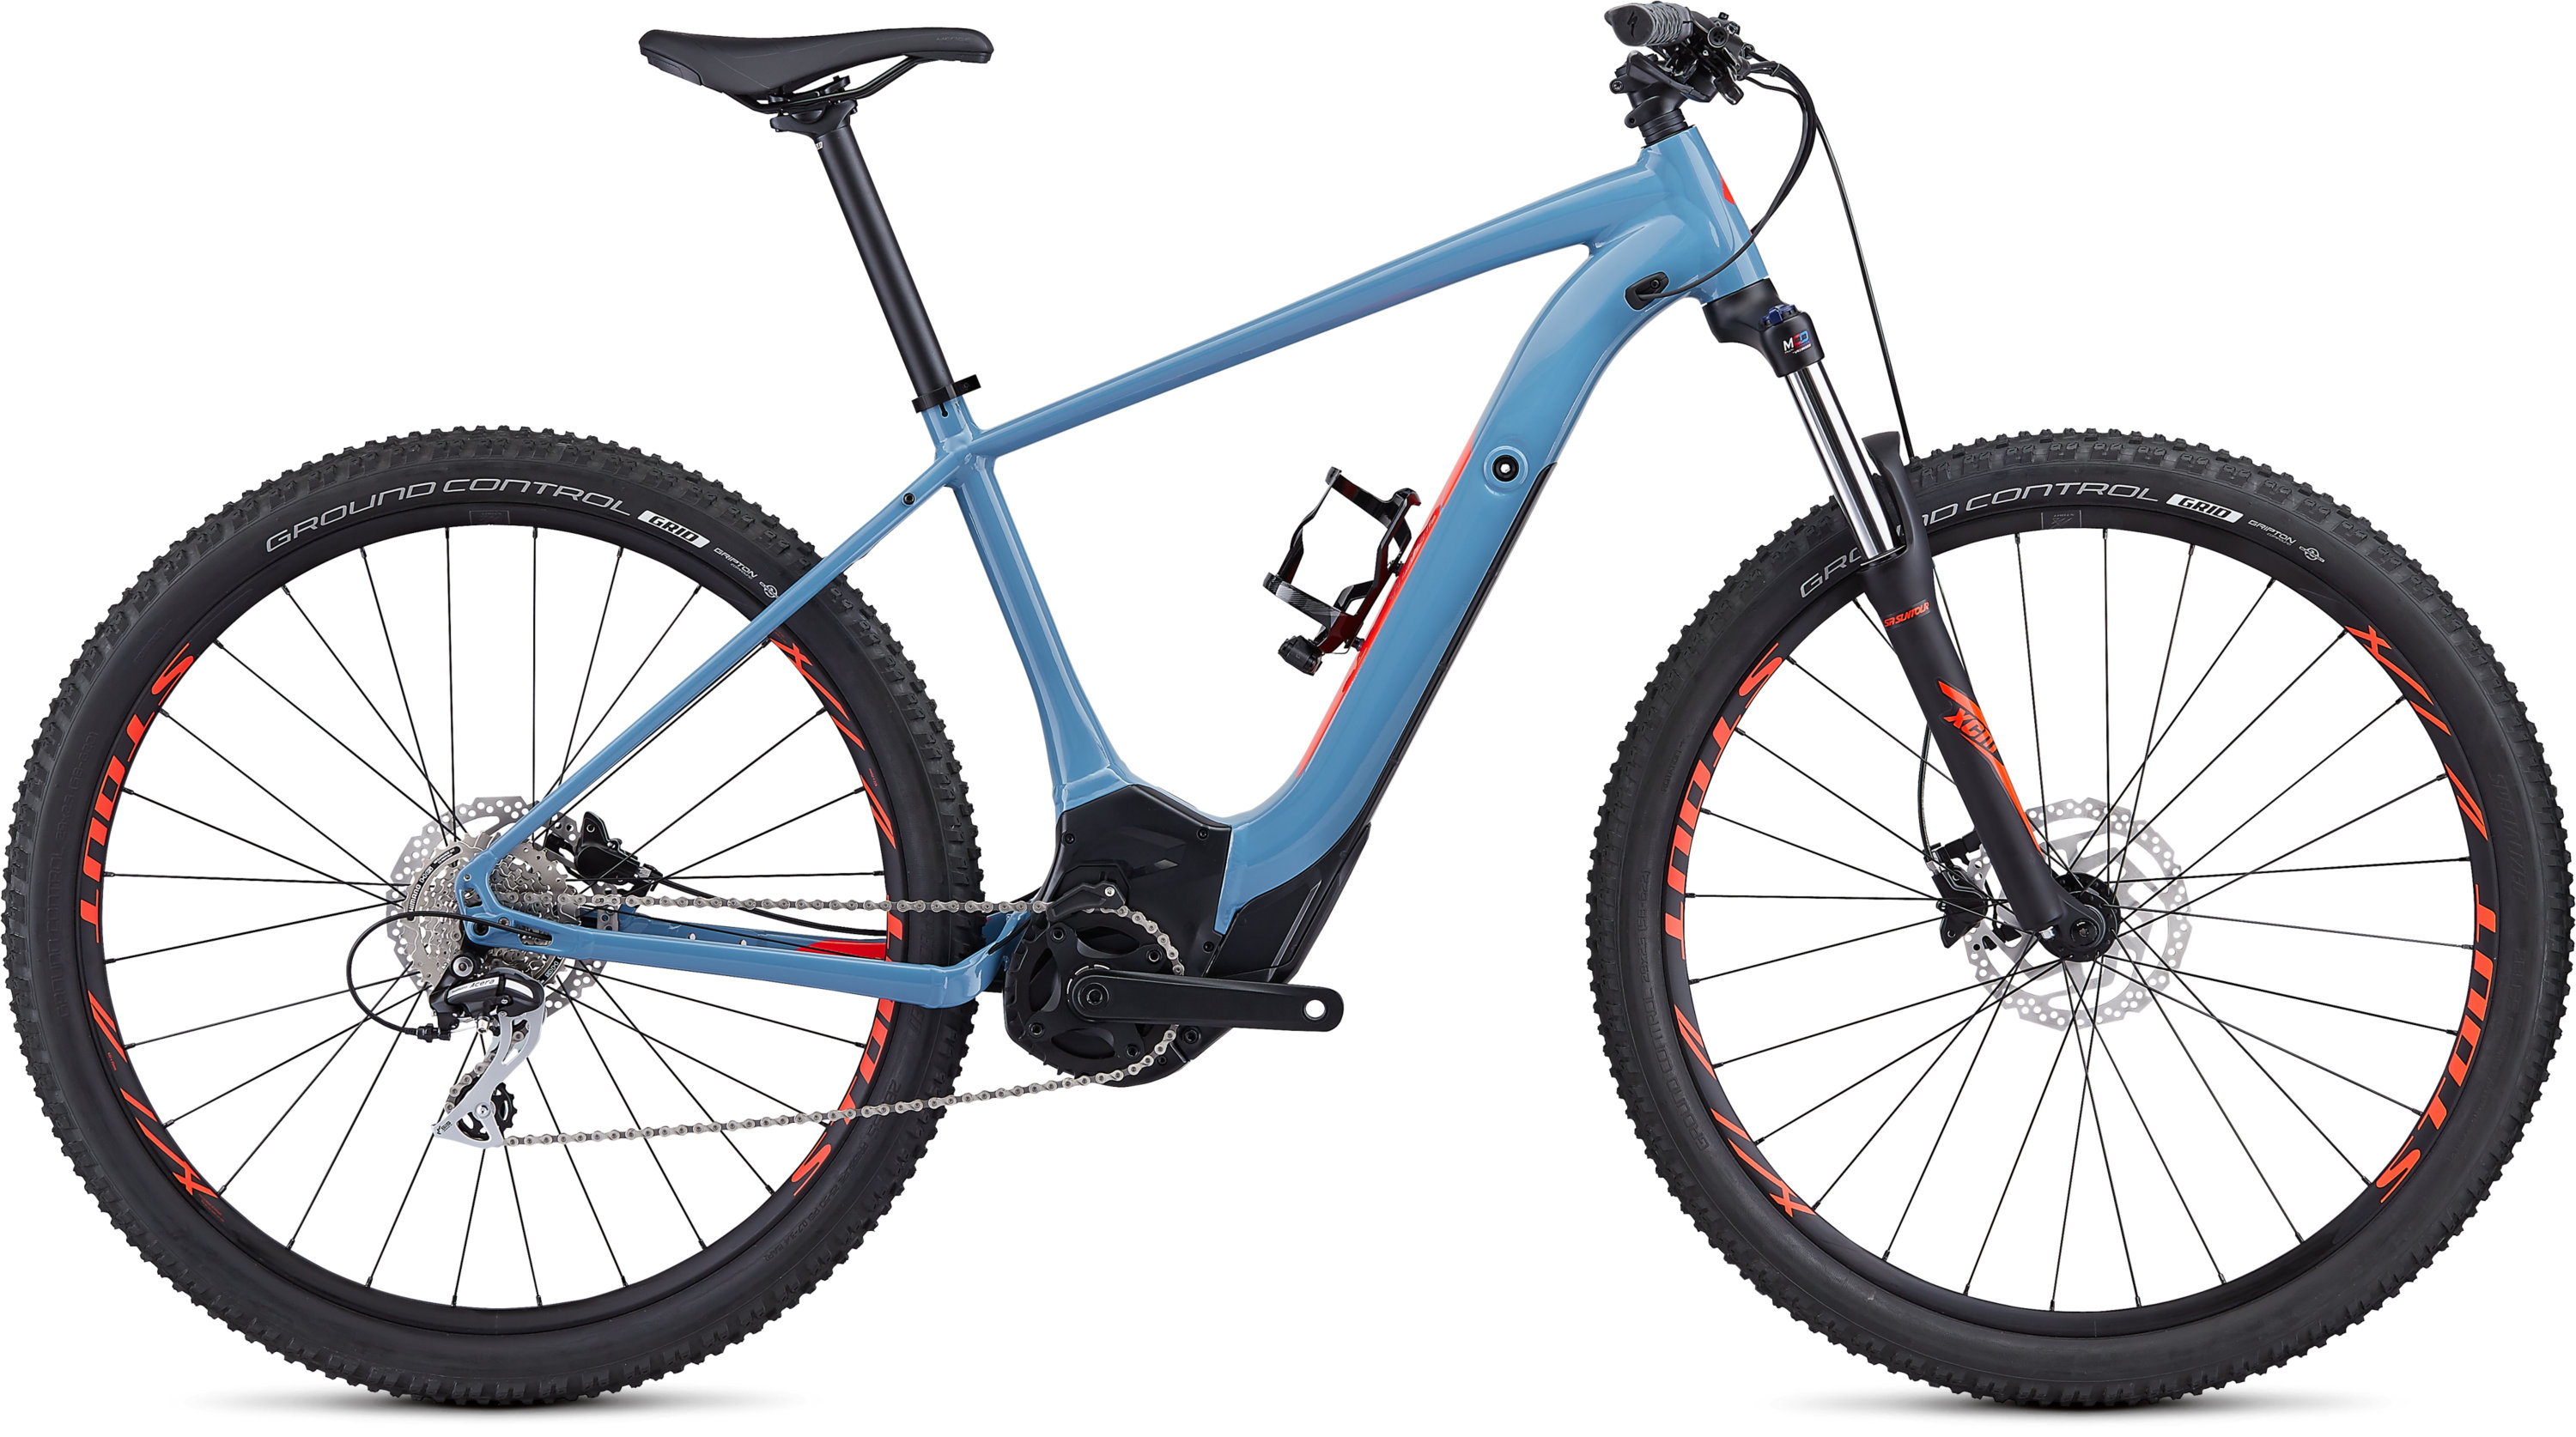 Specialized Men´s Turbo Levo Hardtail 29 Storm Grey/Rocket Red M - Fahrrad online kaufen | Online Shop Bike Profis